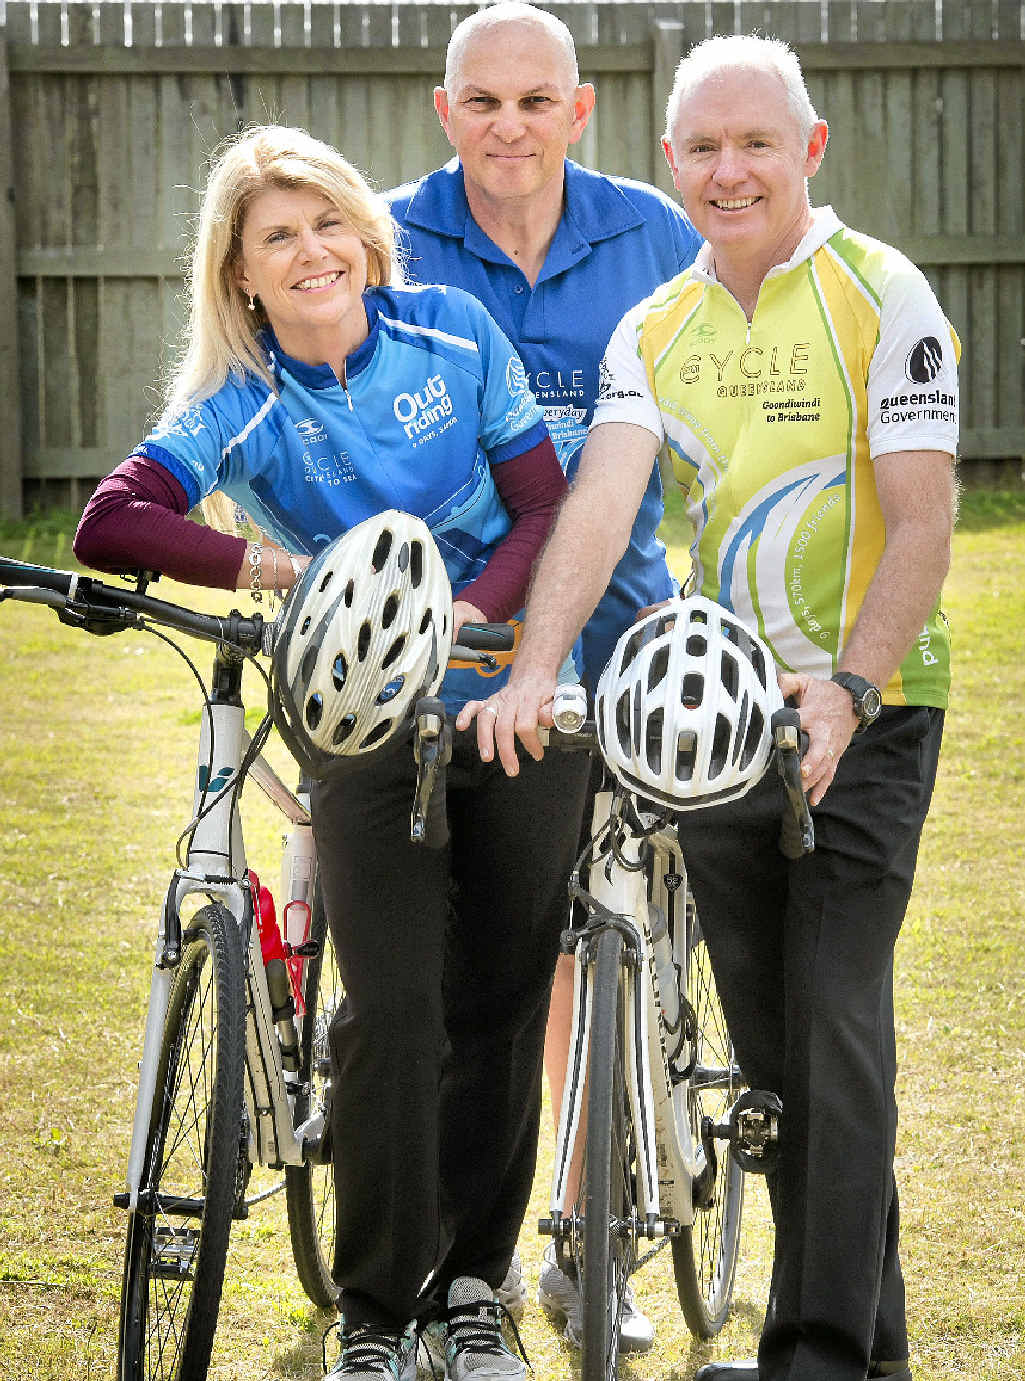 OUTDOOR ADVENTURE: Getting ready for the Cycle Queensland Adventure Tour are (from left) Kim Passante, Jack Passante and Paul Jeffery.